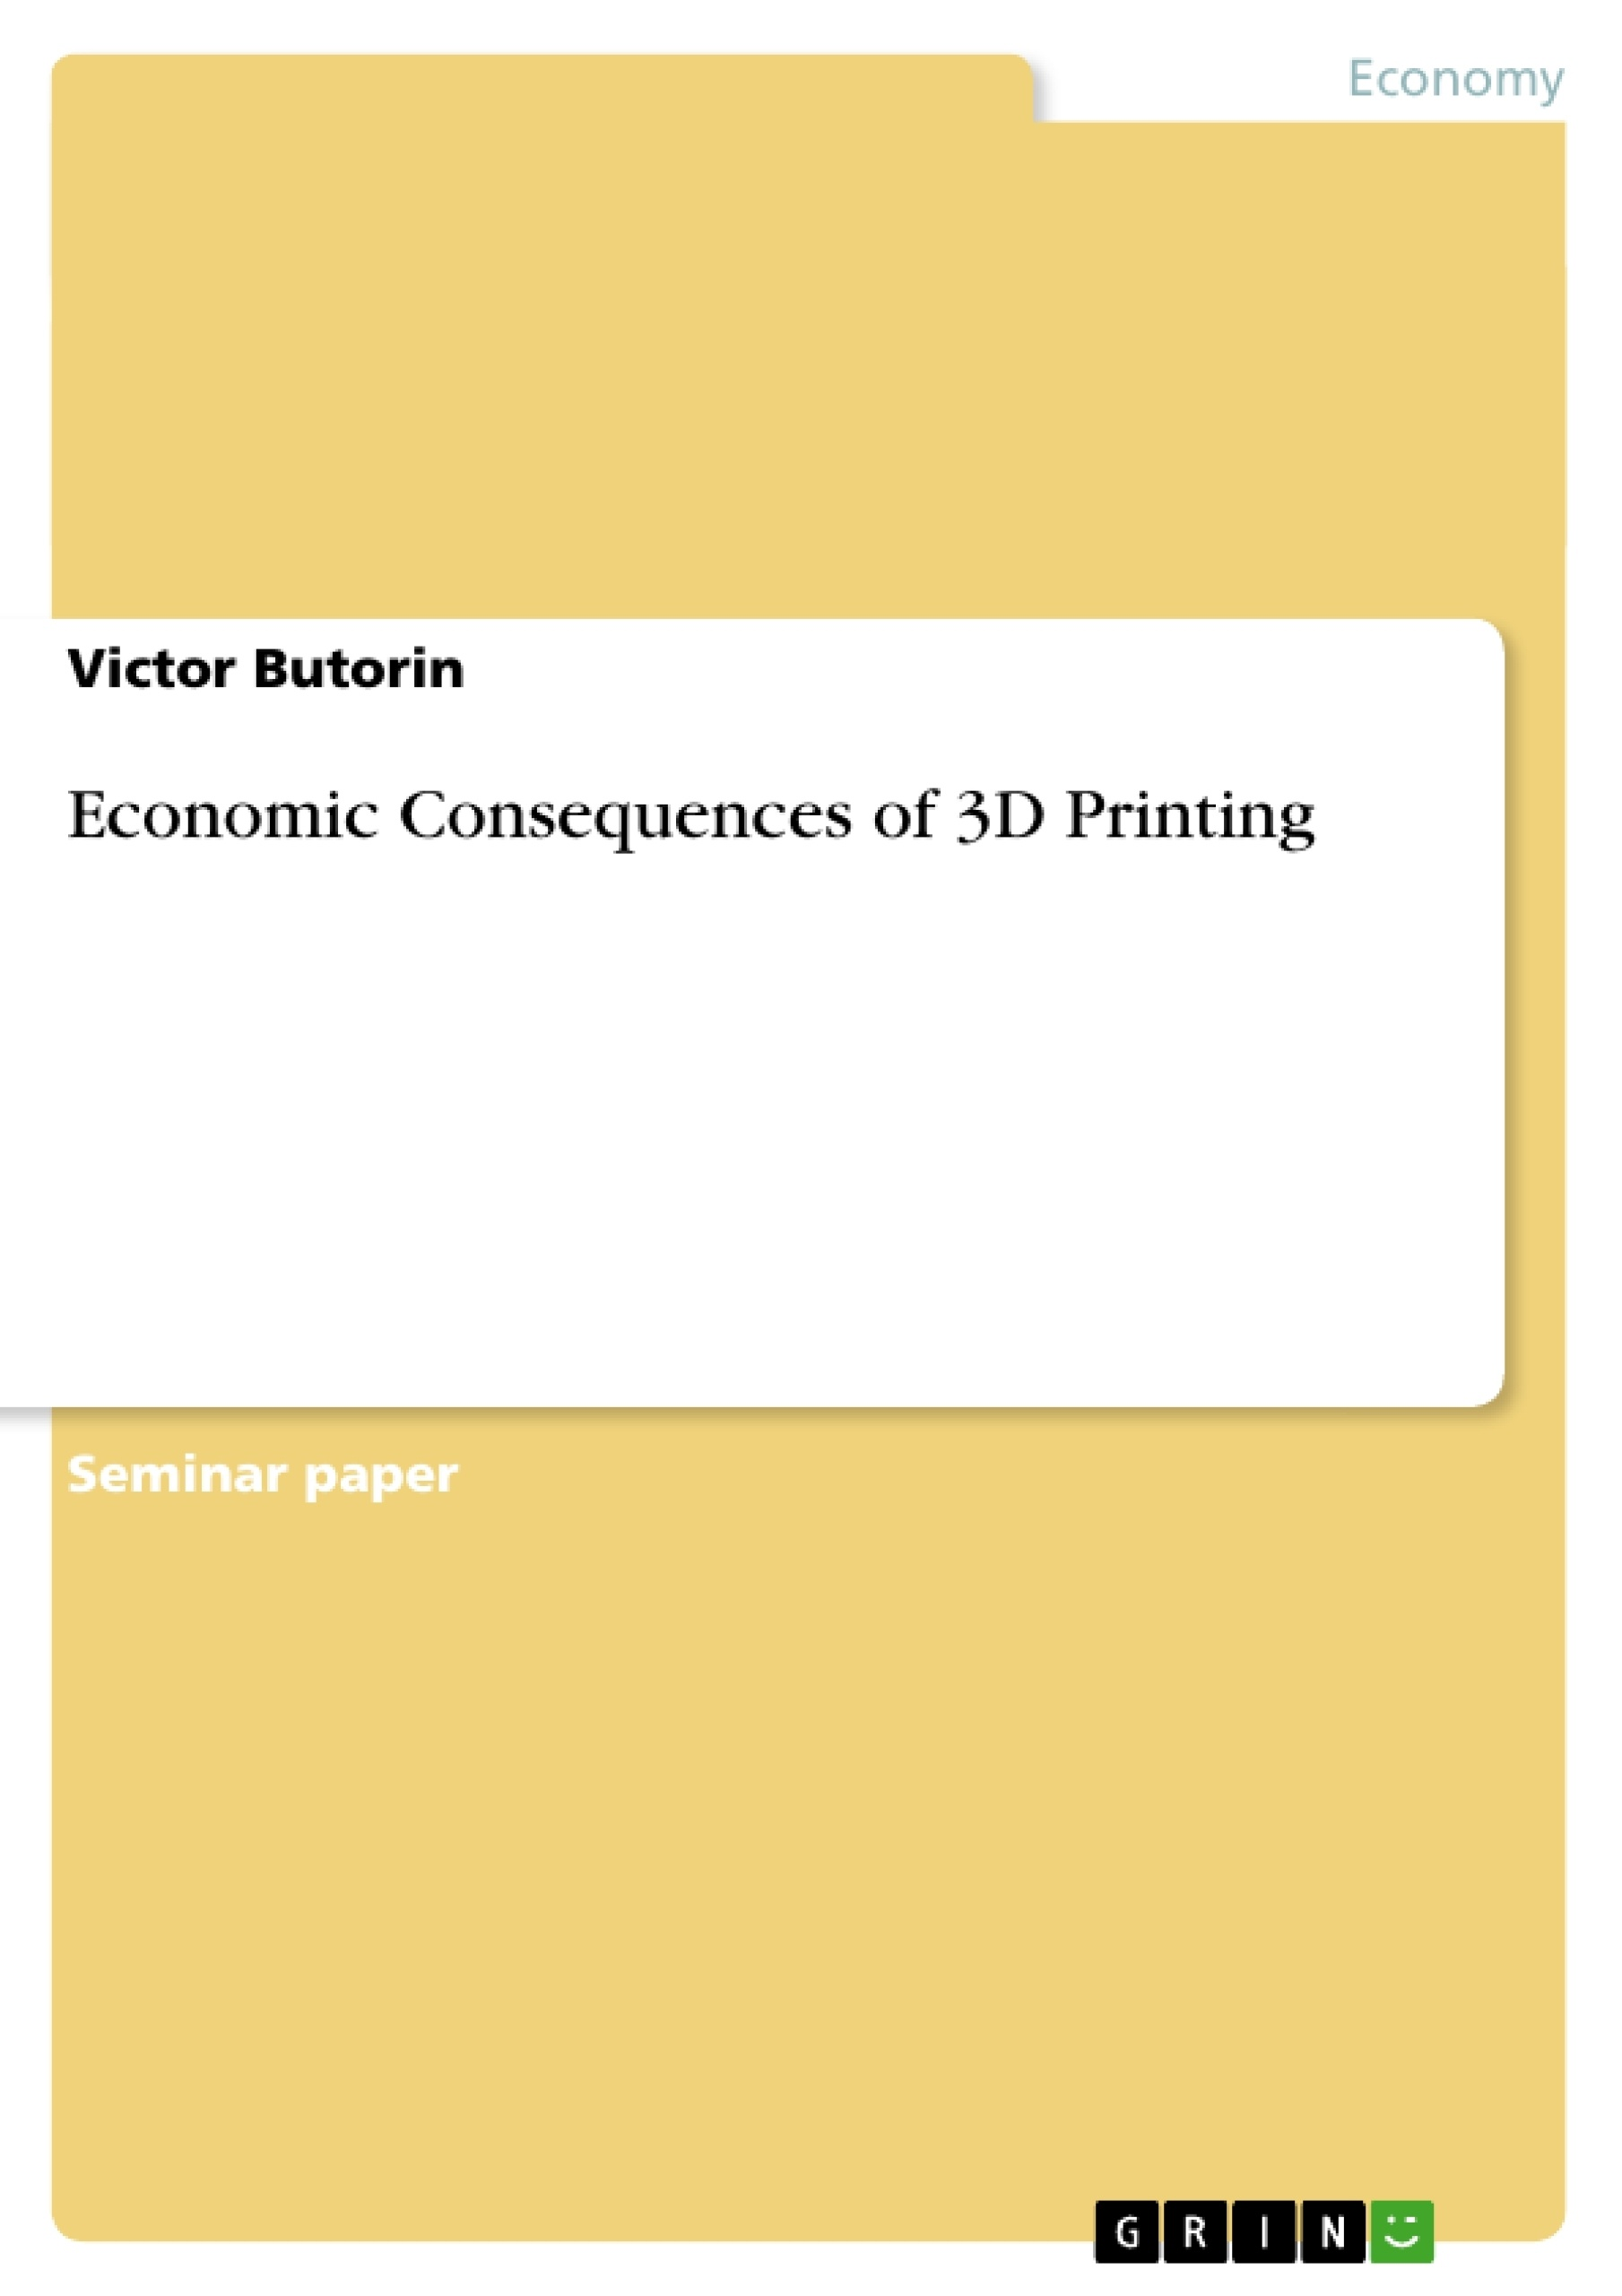 economic consequences of d printing publish your master s economic consequences of 3d printing publish your master s thesis bachelor s thesis essay or term paper